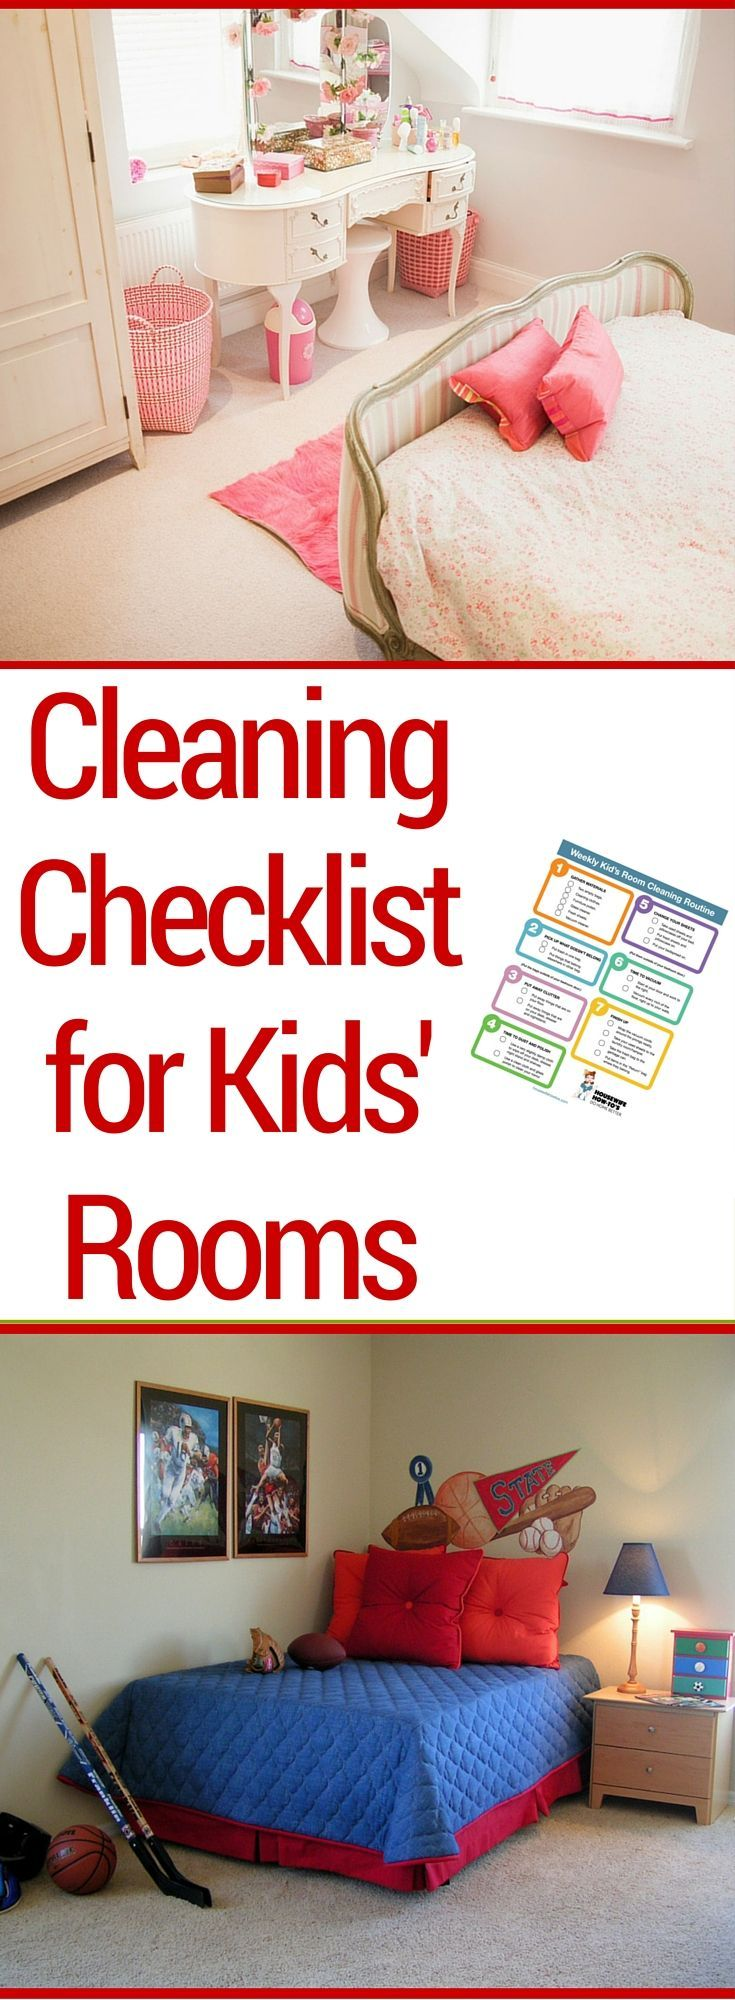 Tired of asking your kids to clean their rooms only to discover, hours later, they haven't done a thing? It's because they don't know what to do. Here's help!